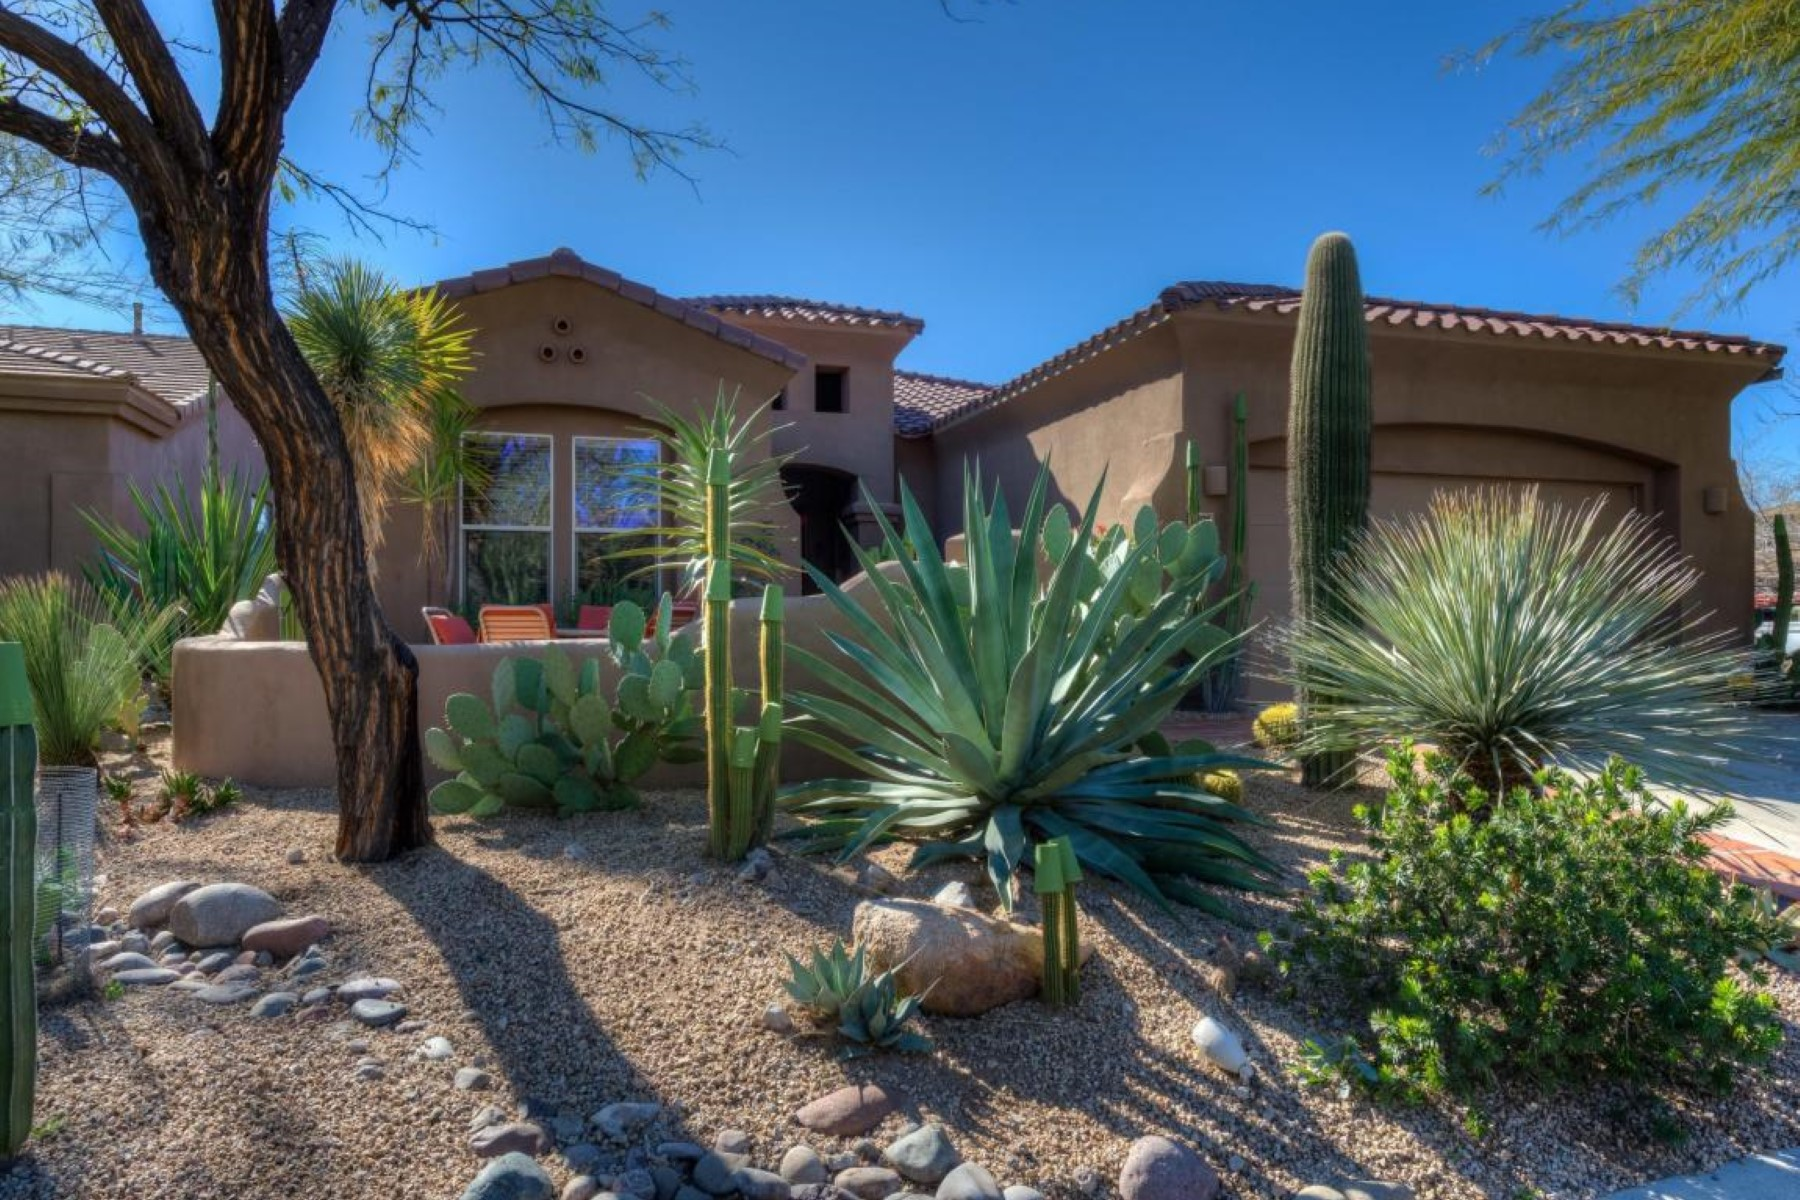 Casa Unifamiliar por un Venta en Immaculate guard gated in Winfield 7305 E Russet Sky Dr Scottsdale, Arizona, 85266 Estados Unidos